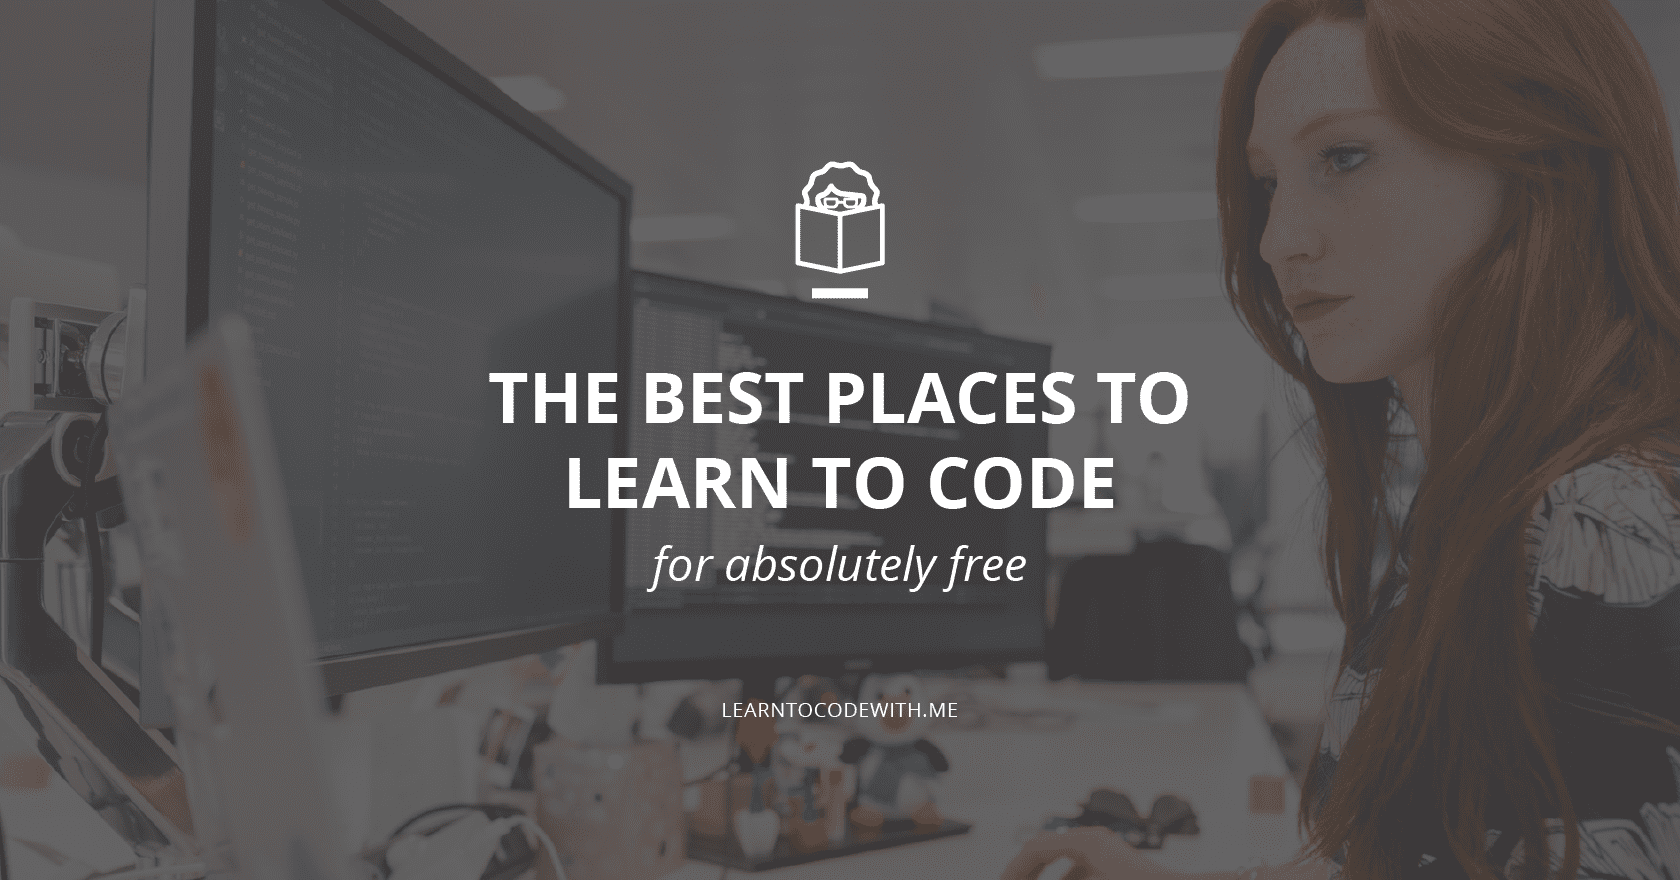 81 Of The Best Places To Learn To Code For Free Learn To Code With Me